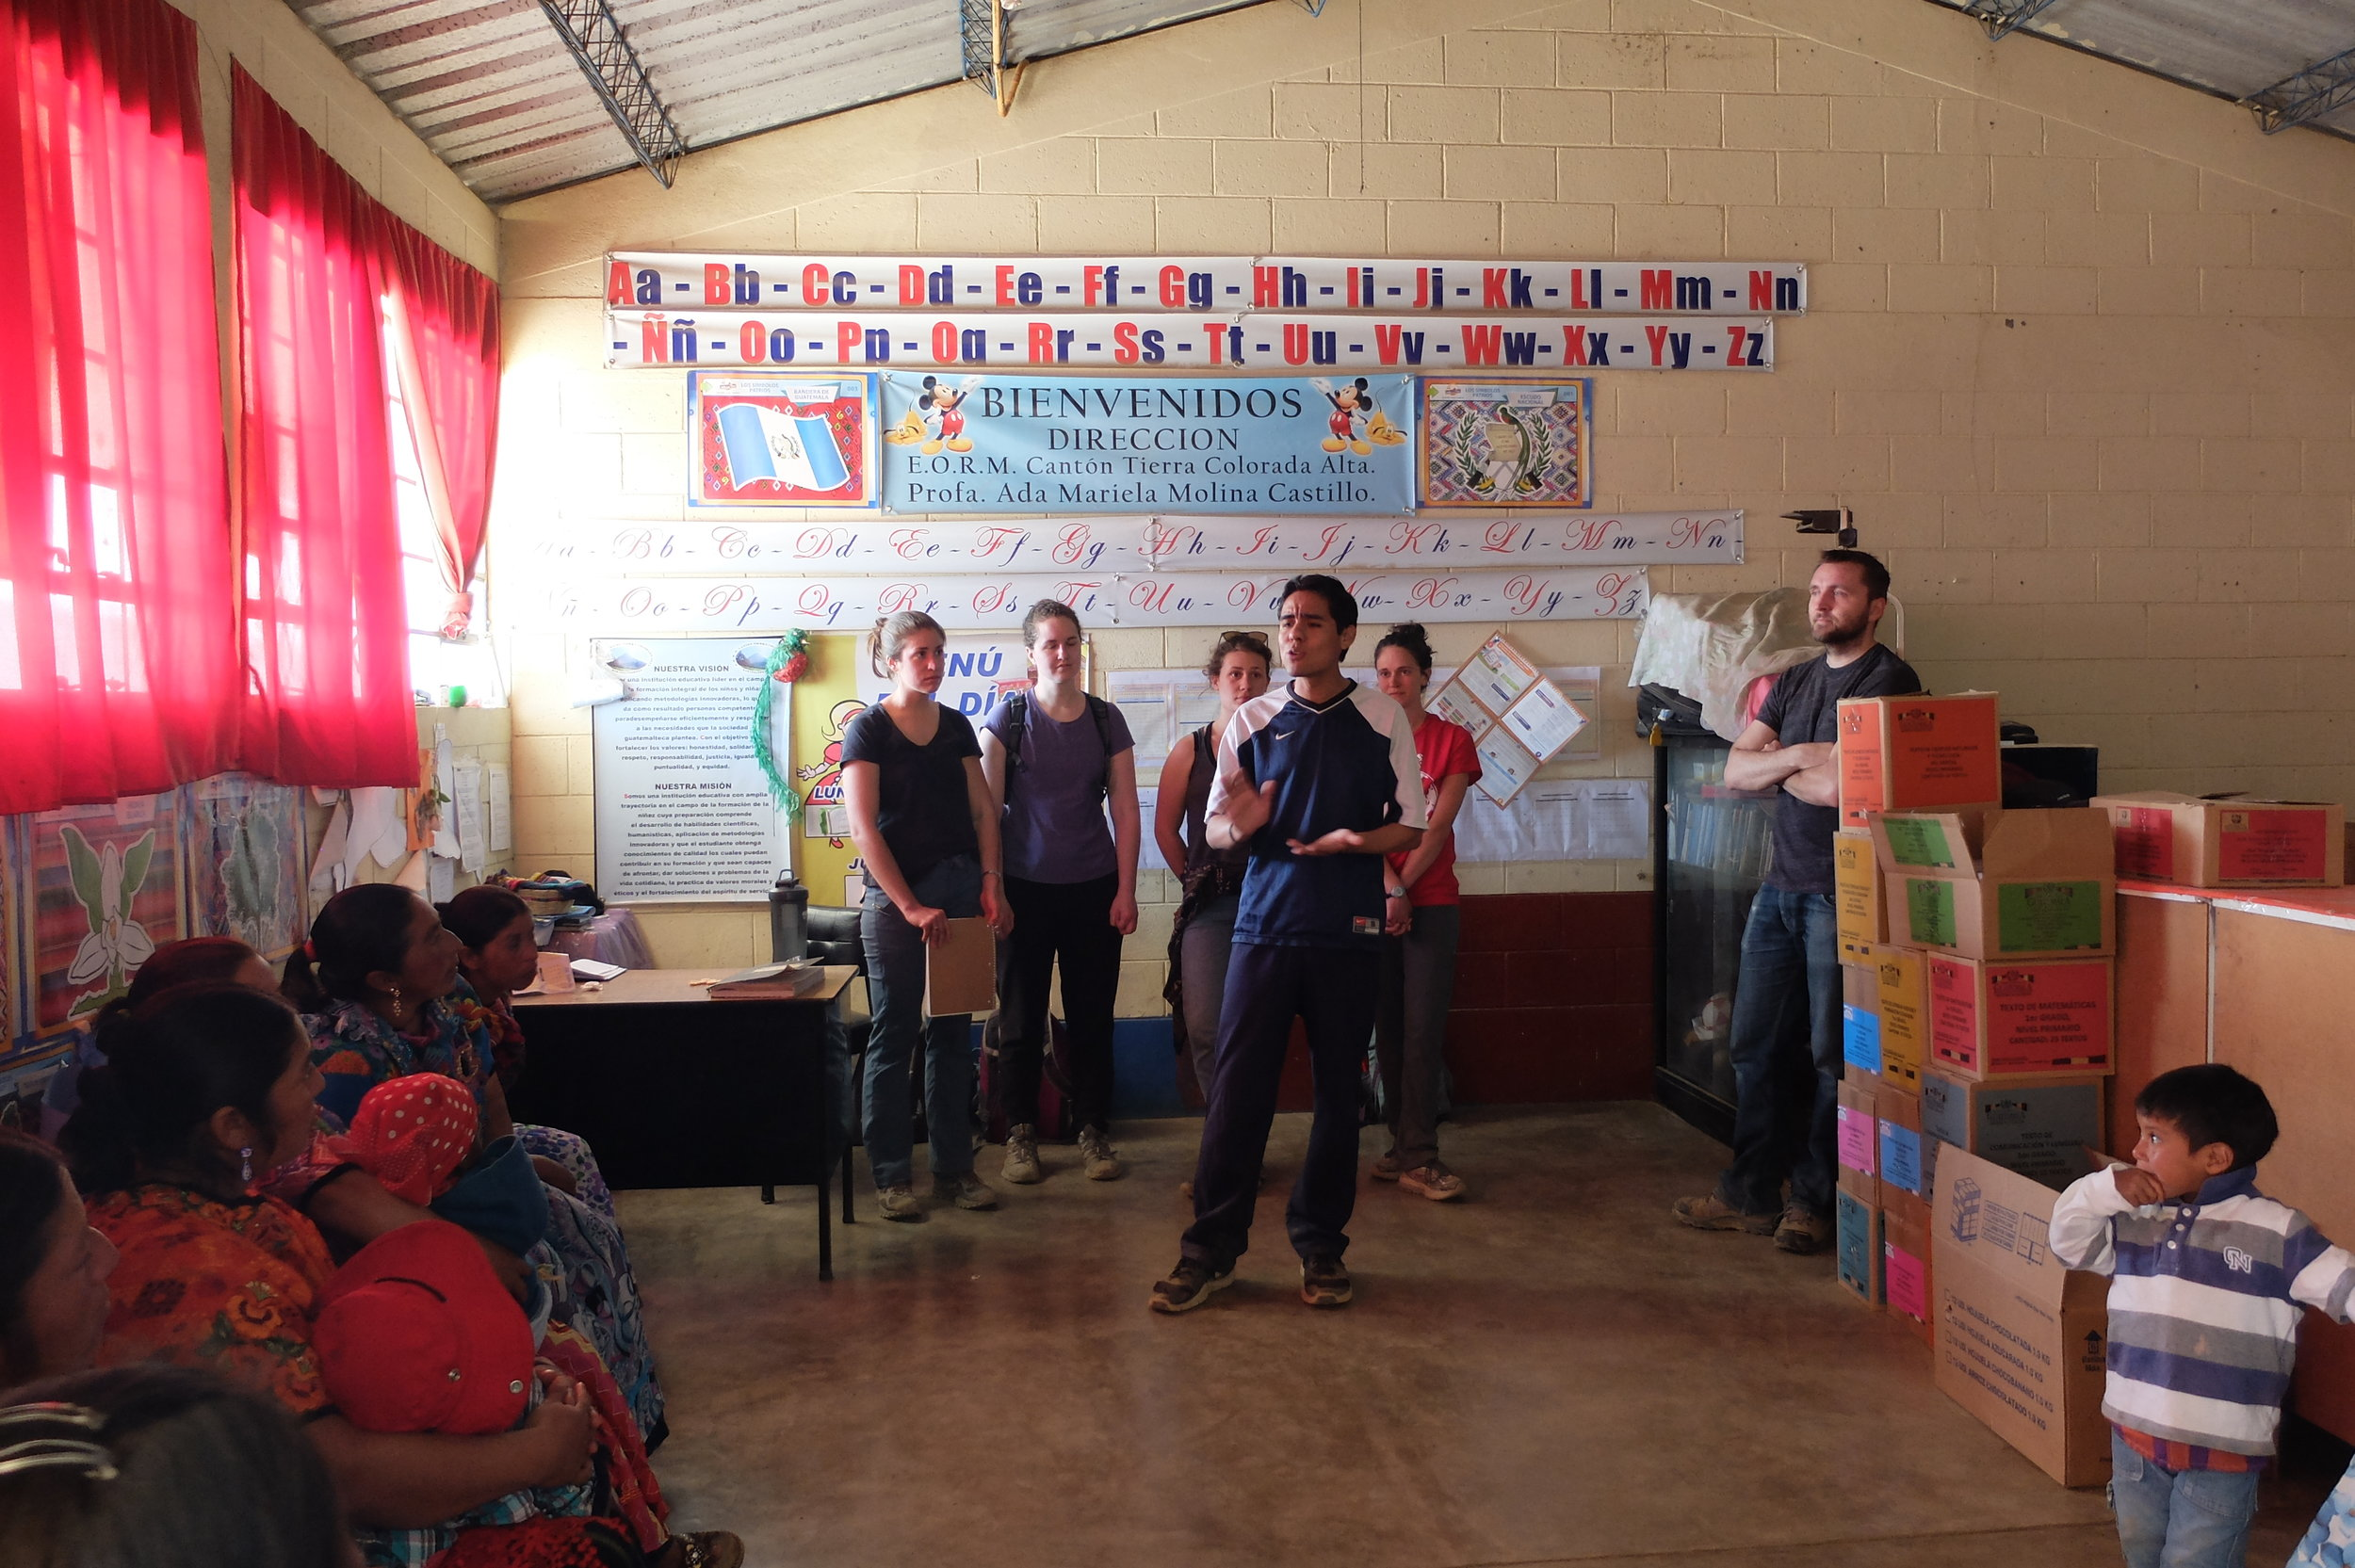 Fabio talking to mothers and children at a school in Tierra Colorada Alta about the medical and dental services offered at the Primeros Pasos clinic.